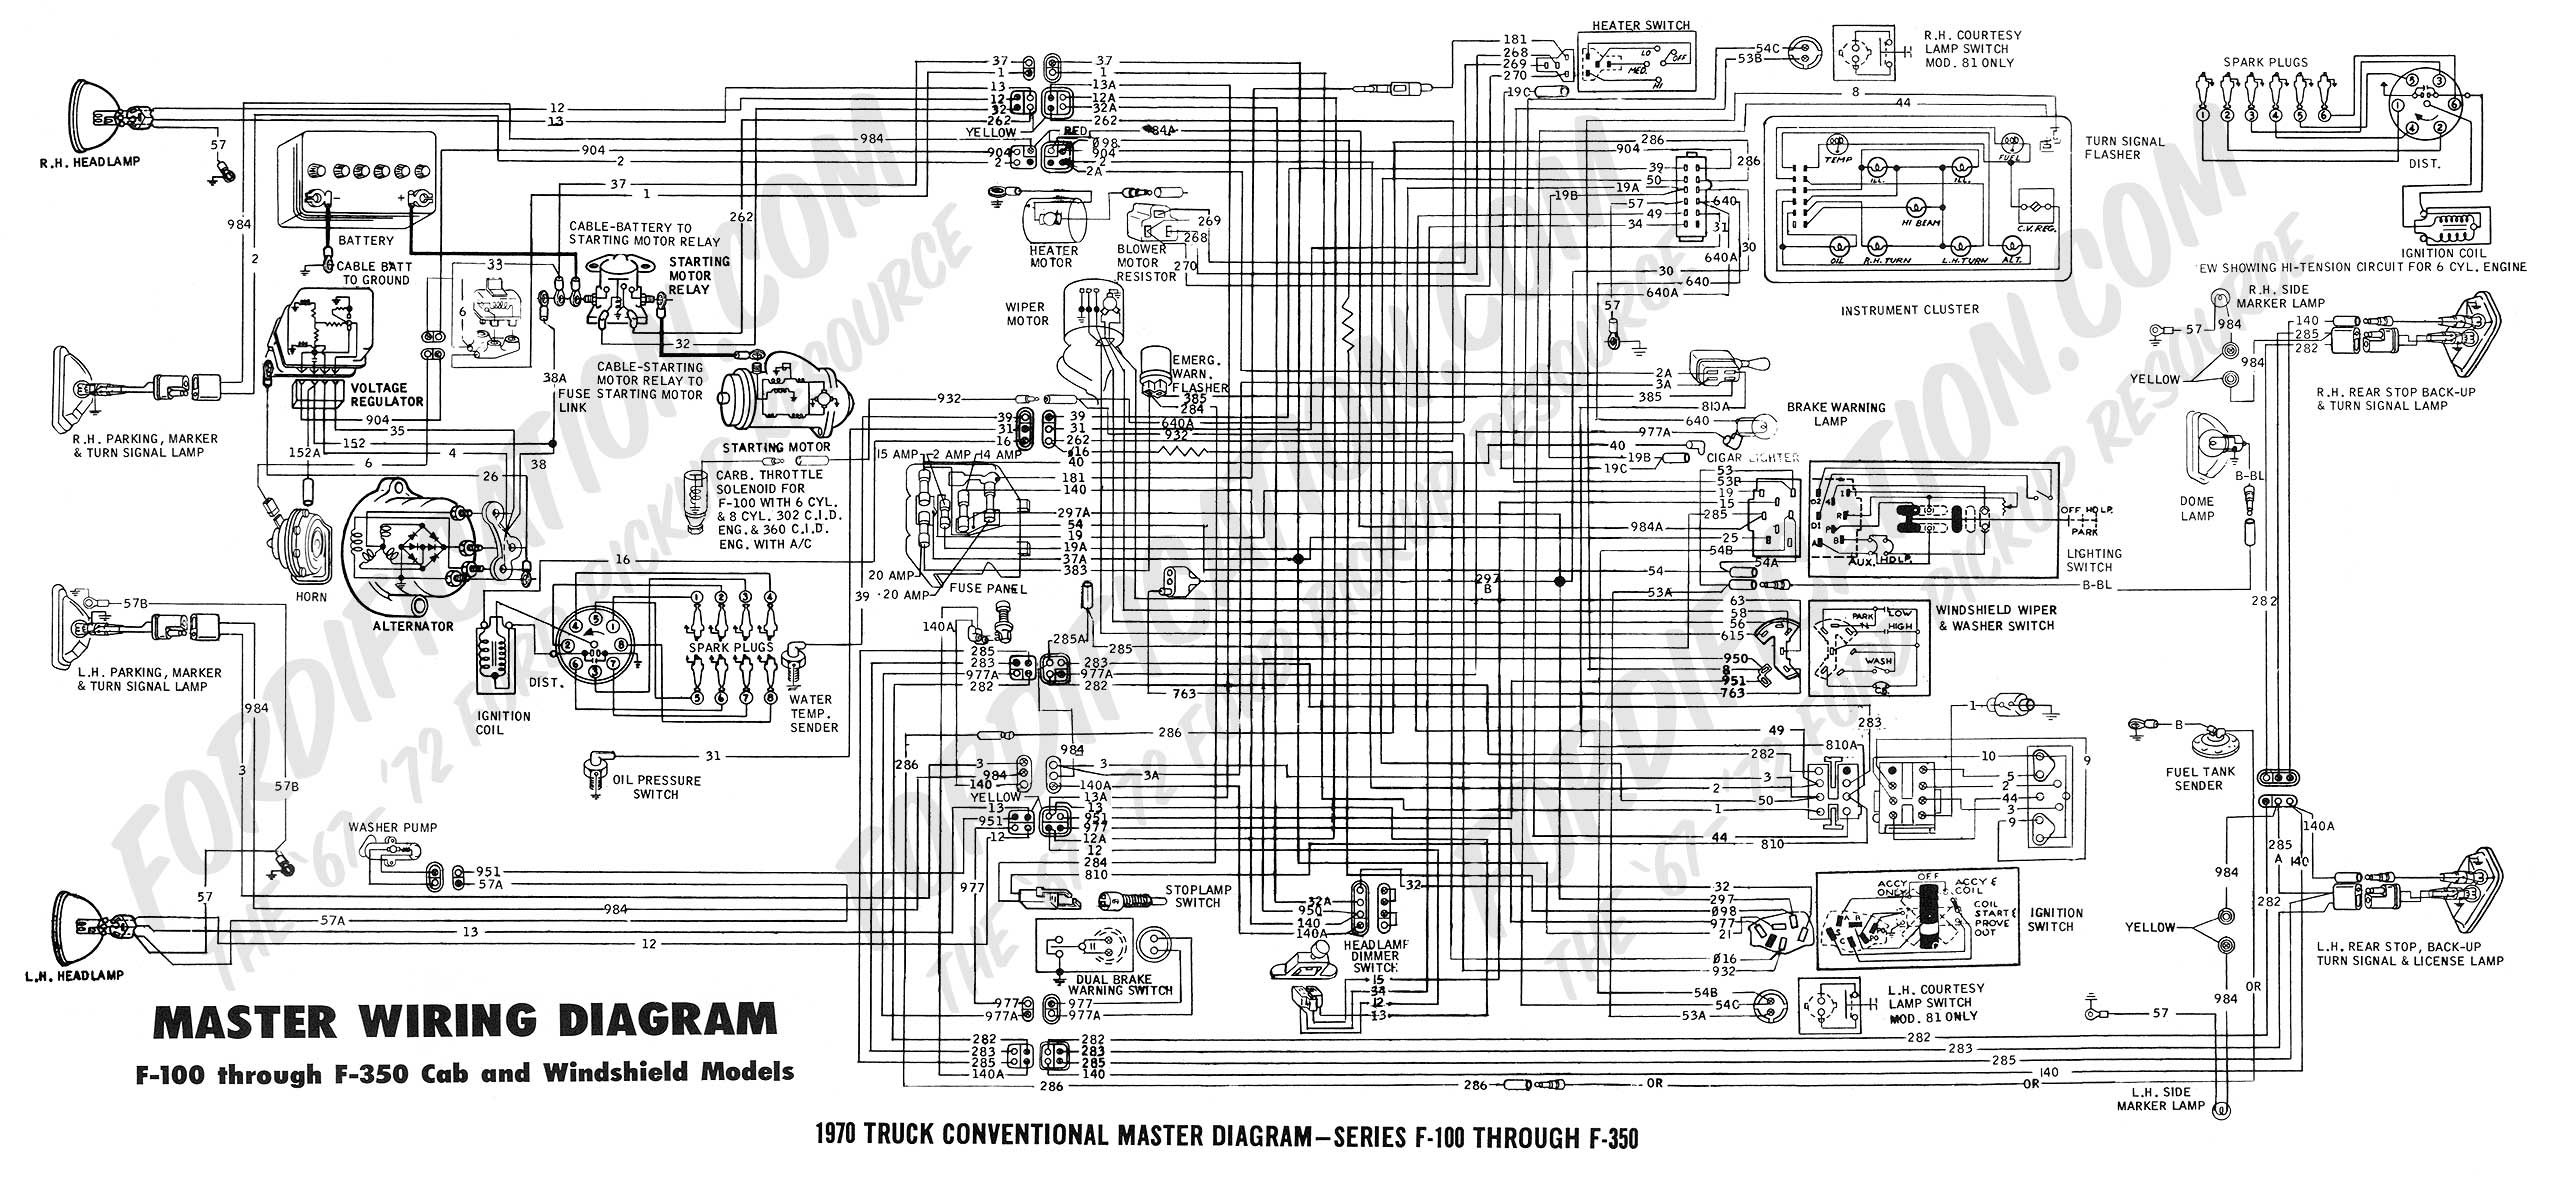 1977 F150 Fuse Diagram List Of Schematic Circuit 2007 Sienna Box 1972 Ford F100 Wiring Schematics Data Schema Rh Site De Joueurs Com Panel